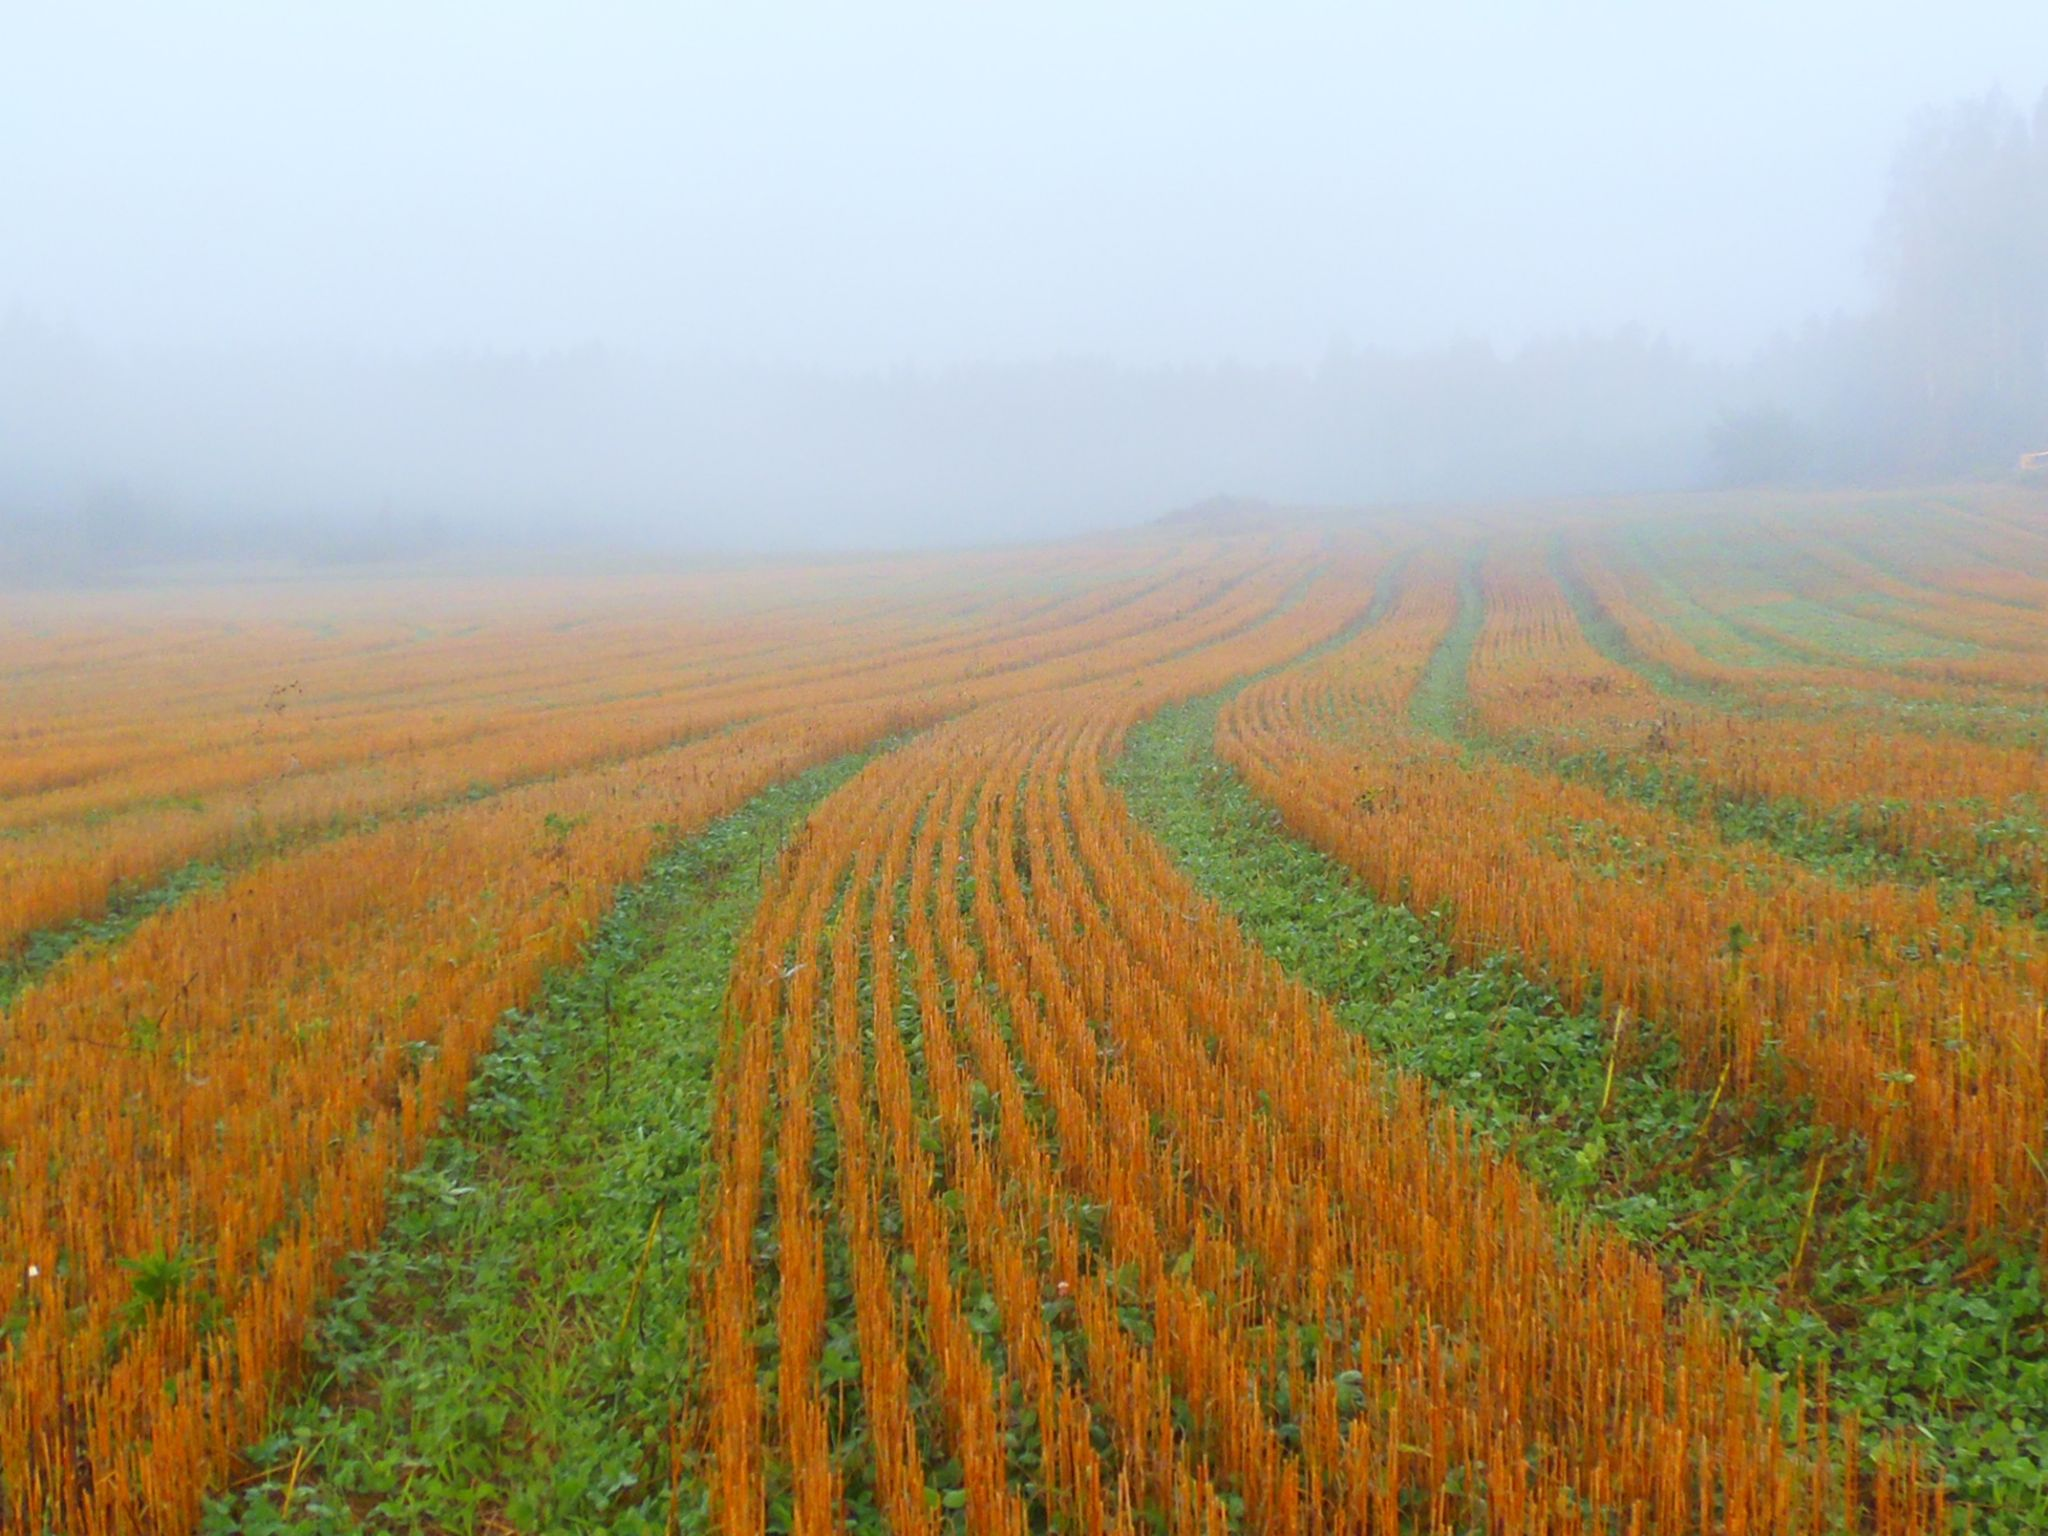 field in the autumn - pelto by laura.kamil